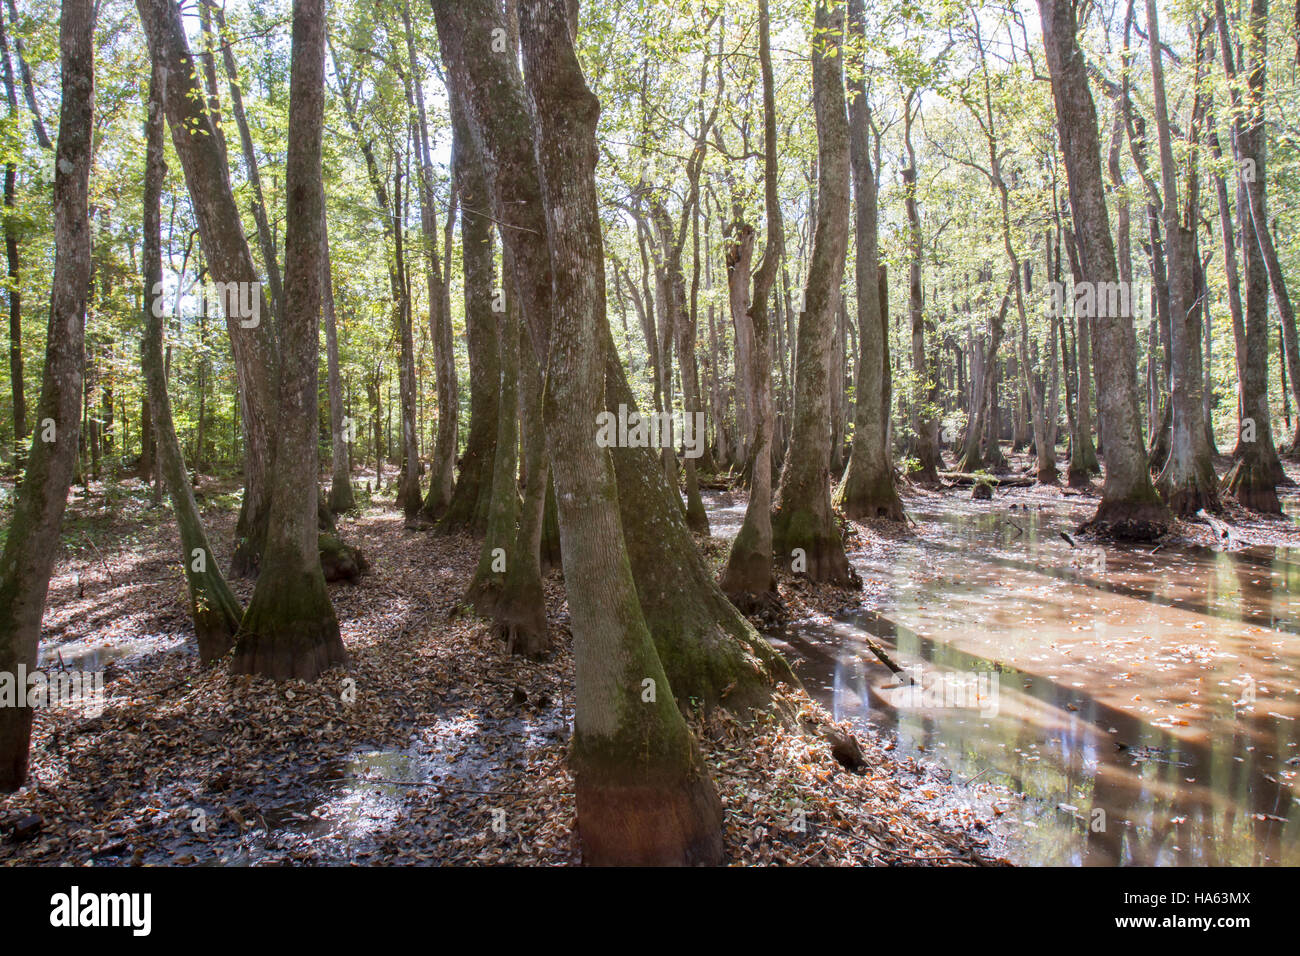 Cypress and water tupelo tree swamp along Natchez Trace Parkway in Mississippi, USA. - Stock Image